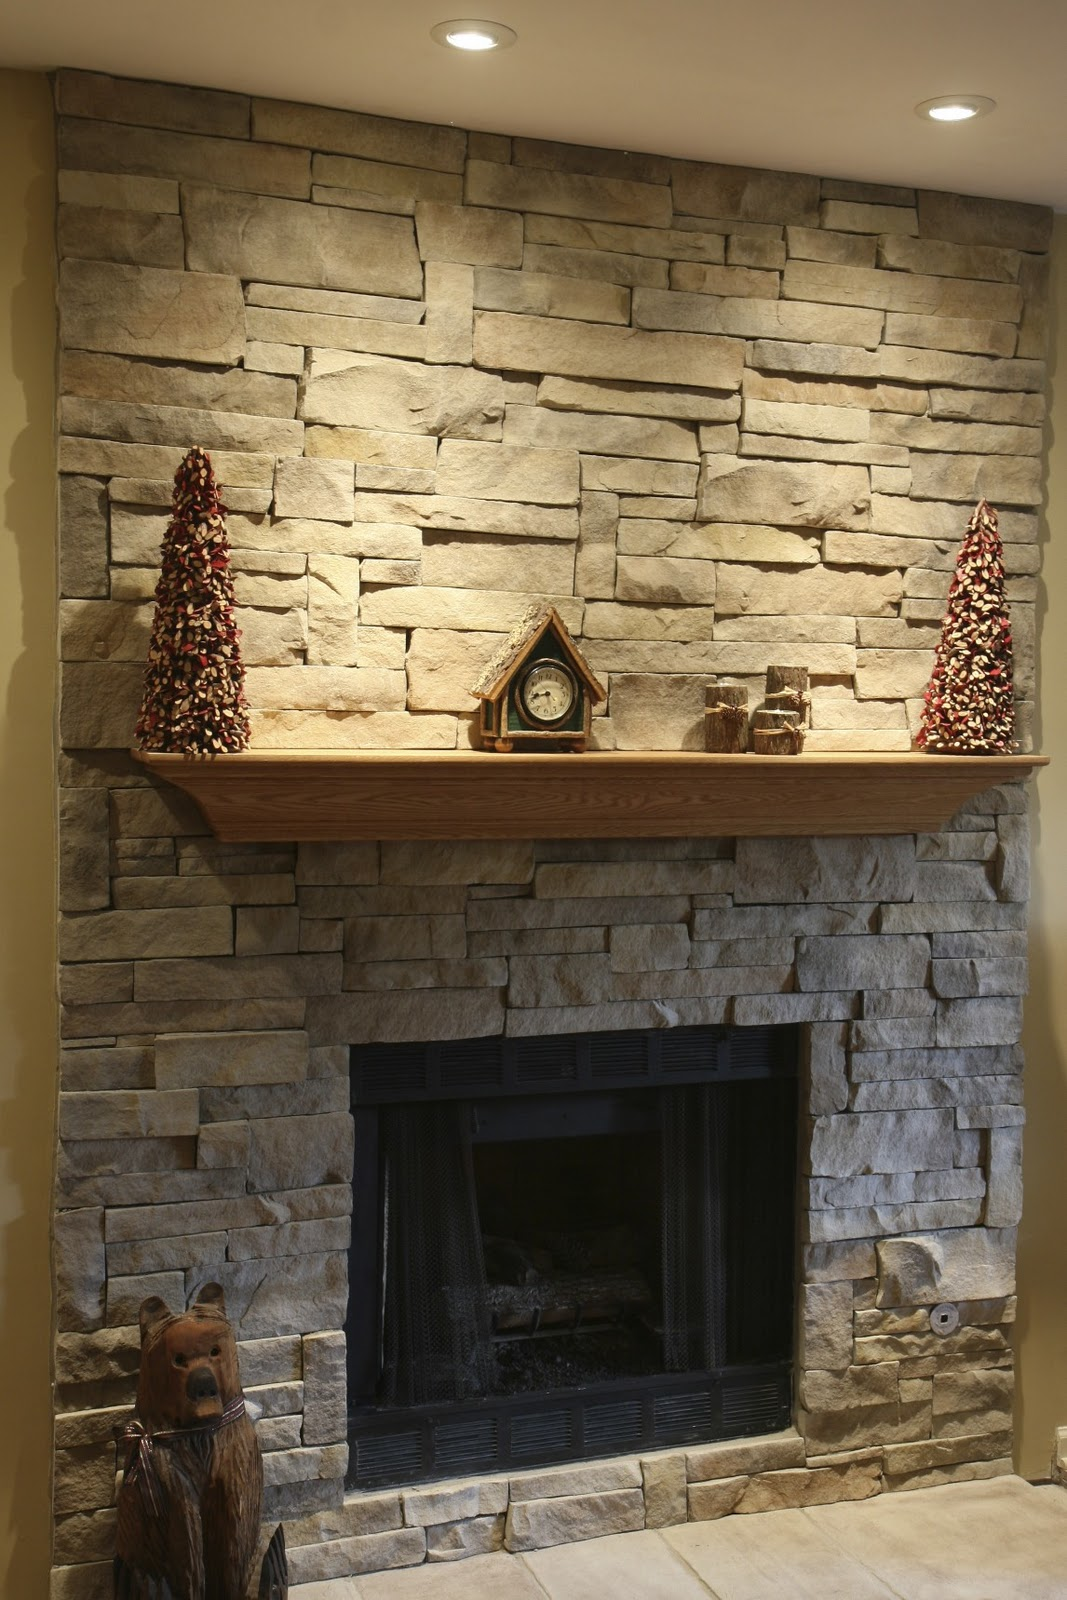 Fireplace stone ideas for your style - Stone fireplace surround ideas ...